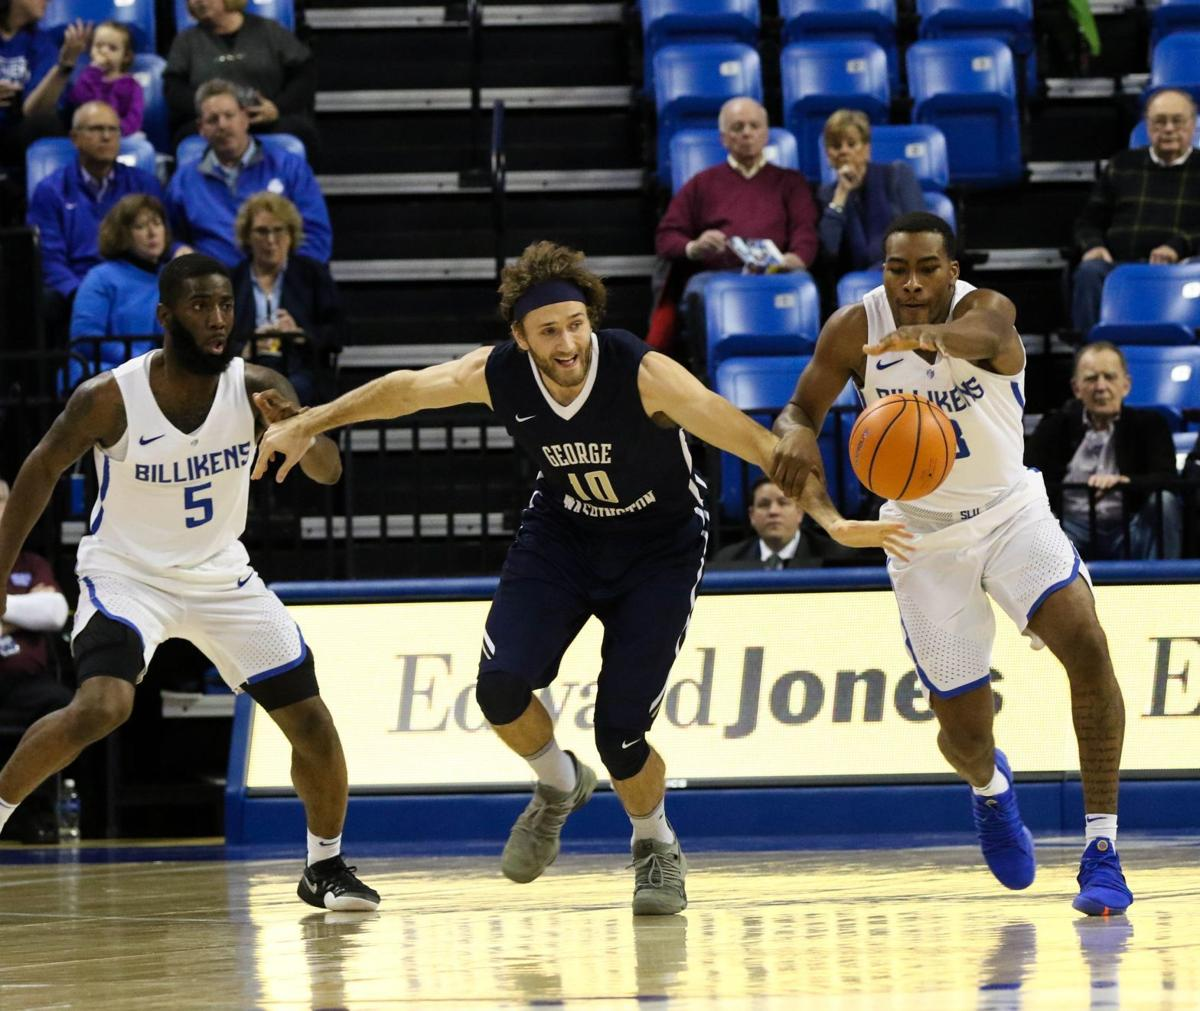 SLU vs George Washington Colonials